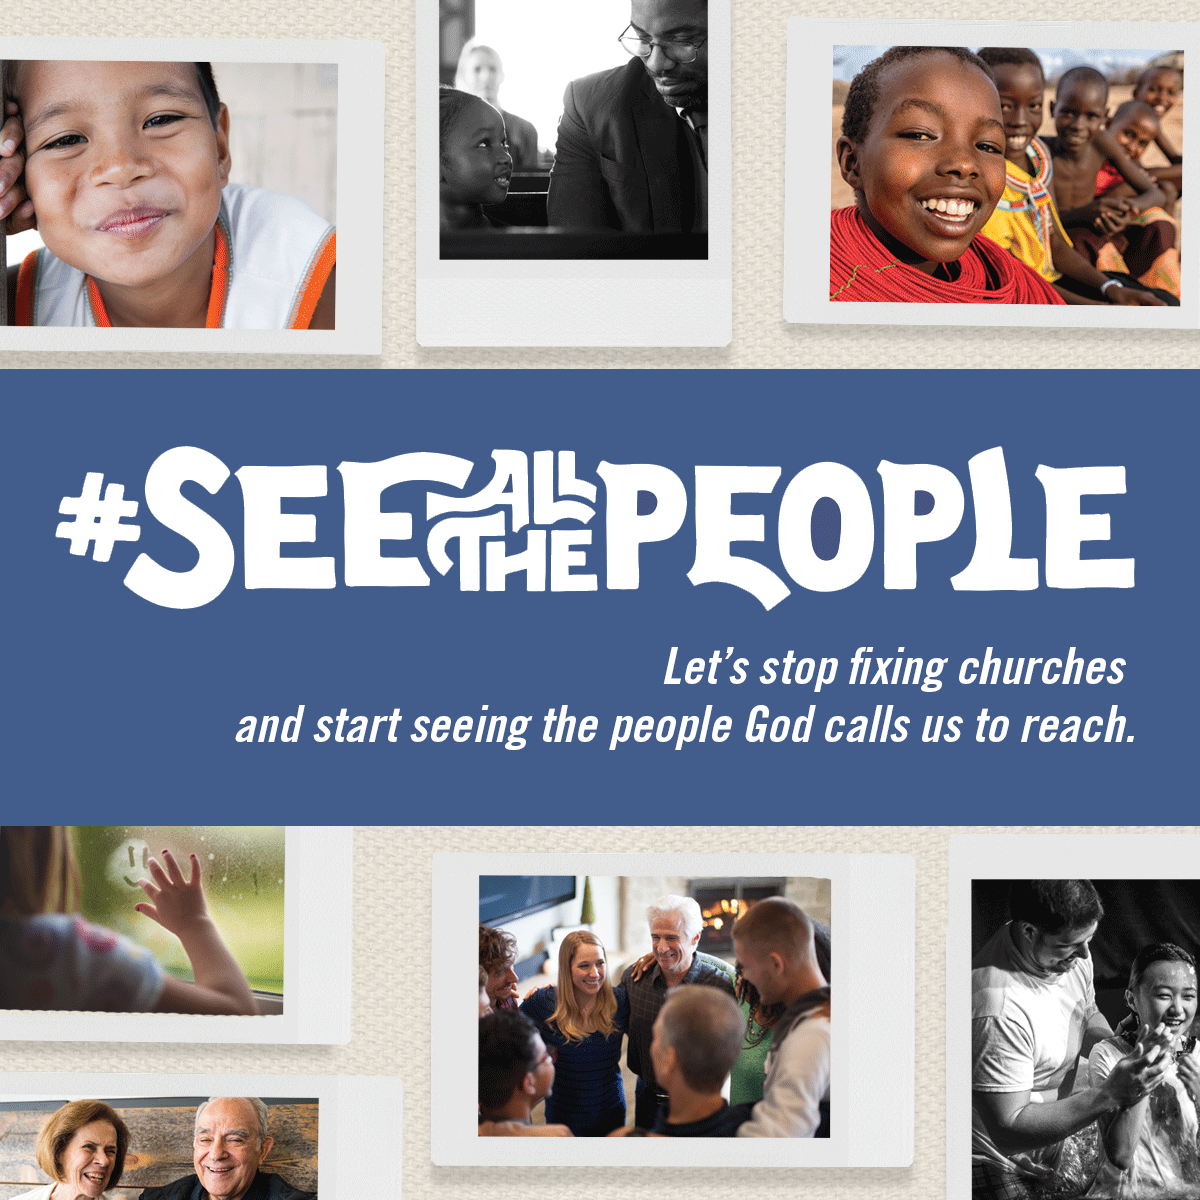 #SeeAllThePeople — Let's stop fixing churches and start seeing the people God calls us to reach.